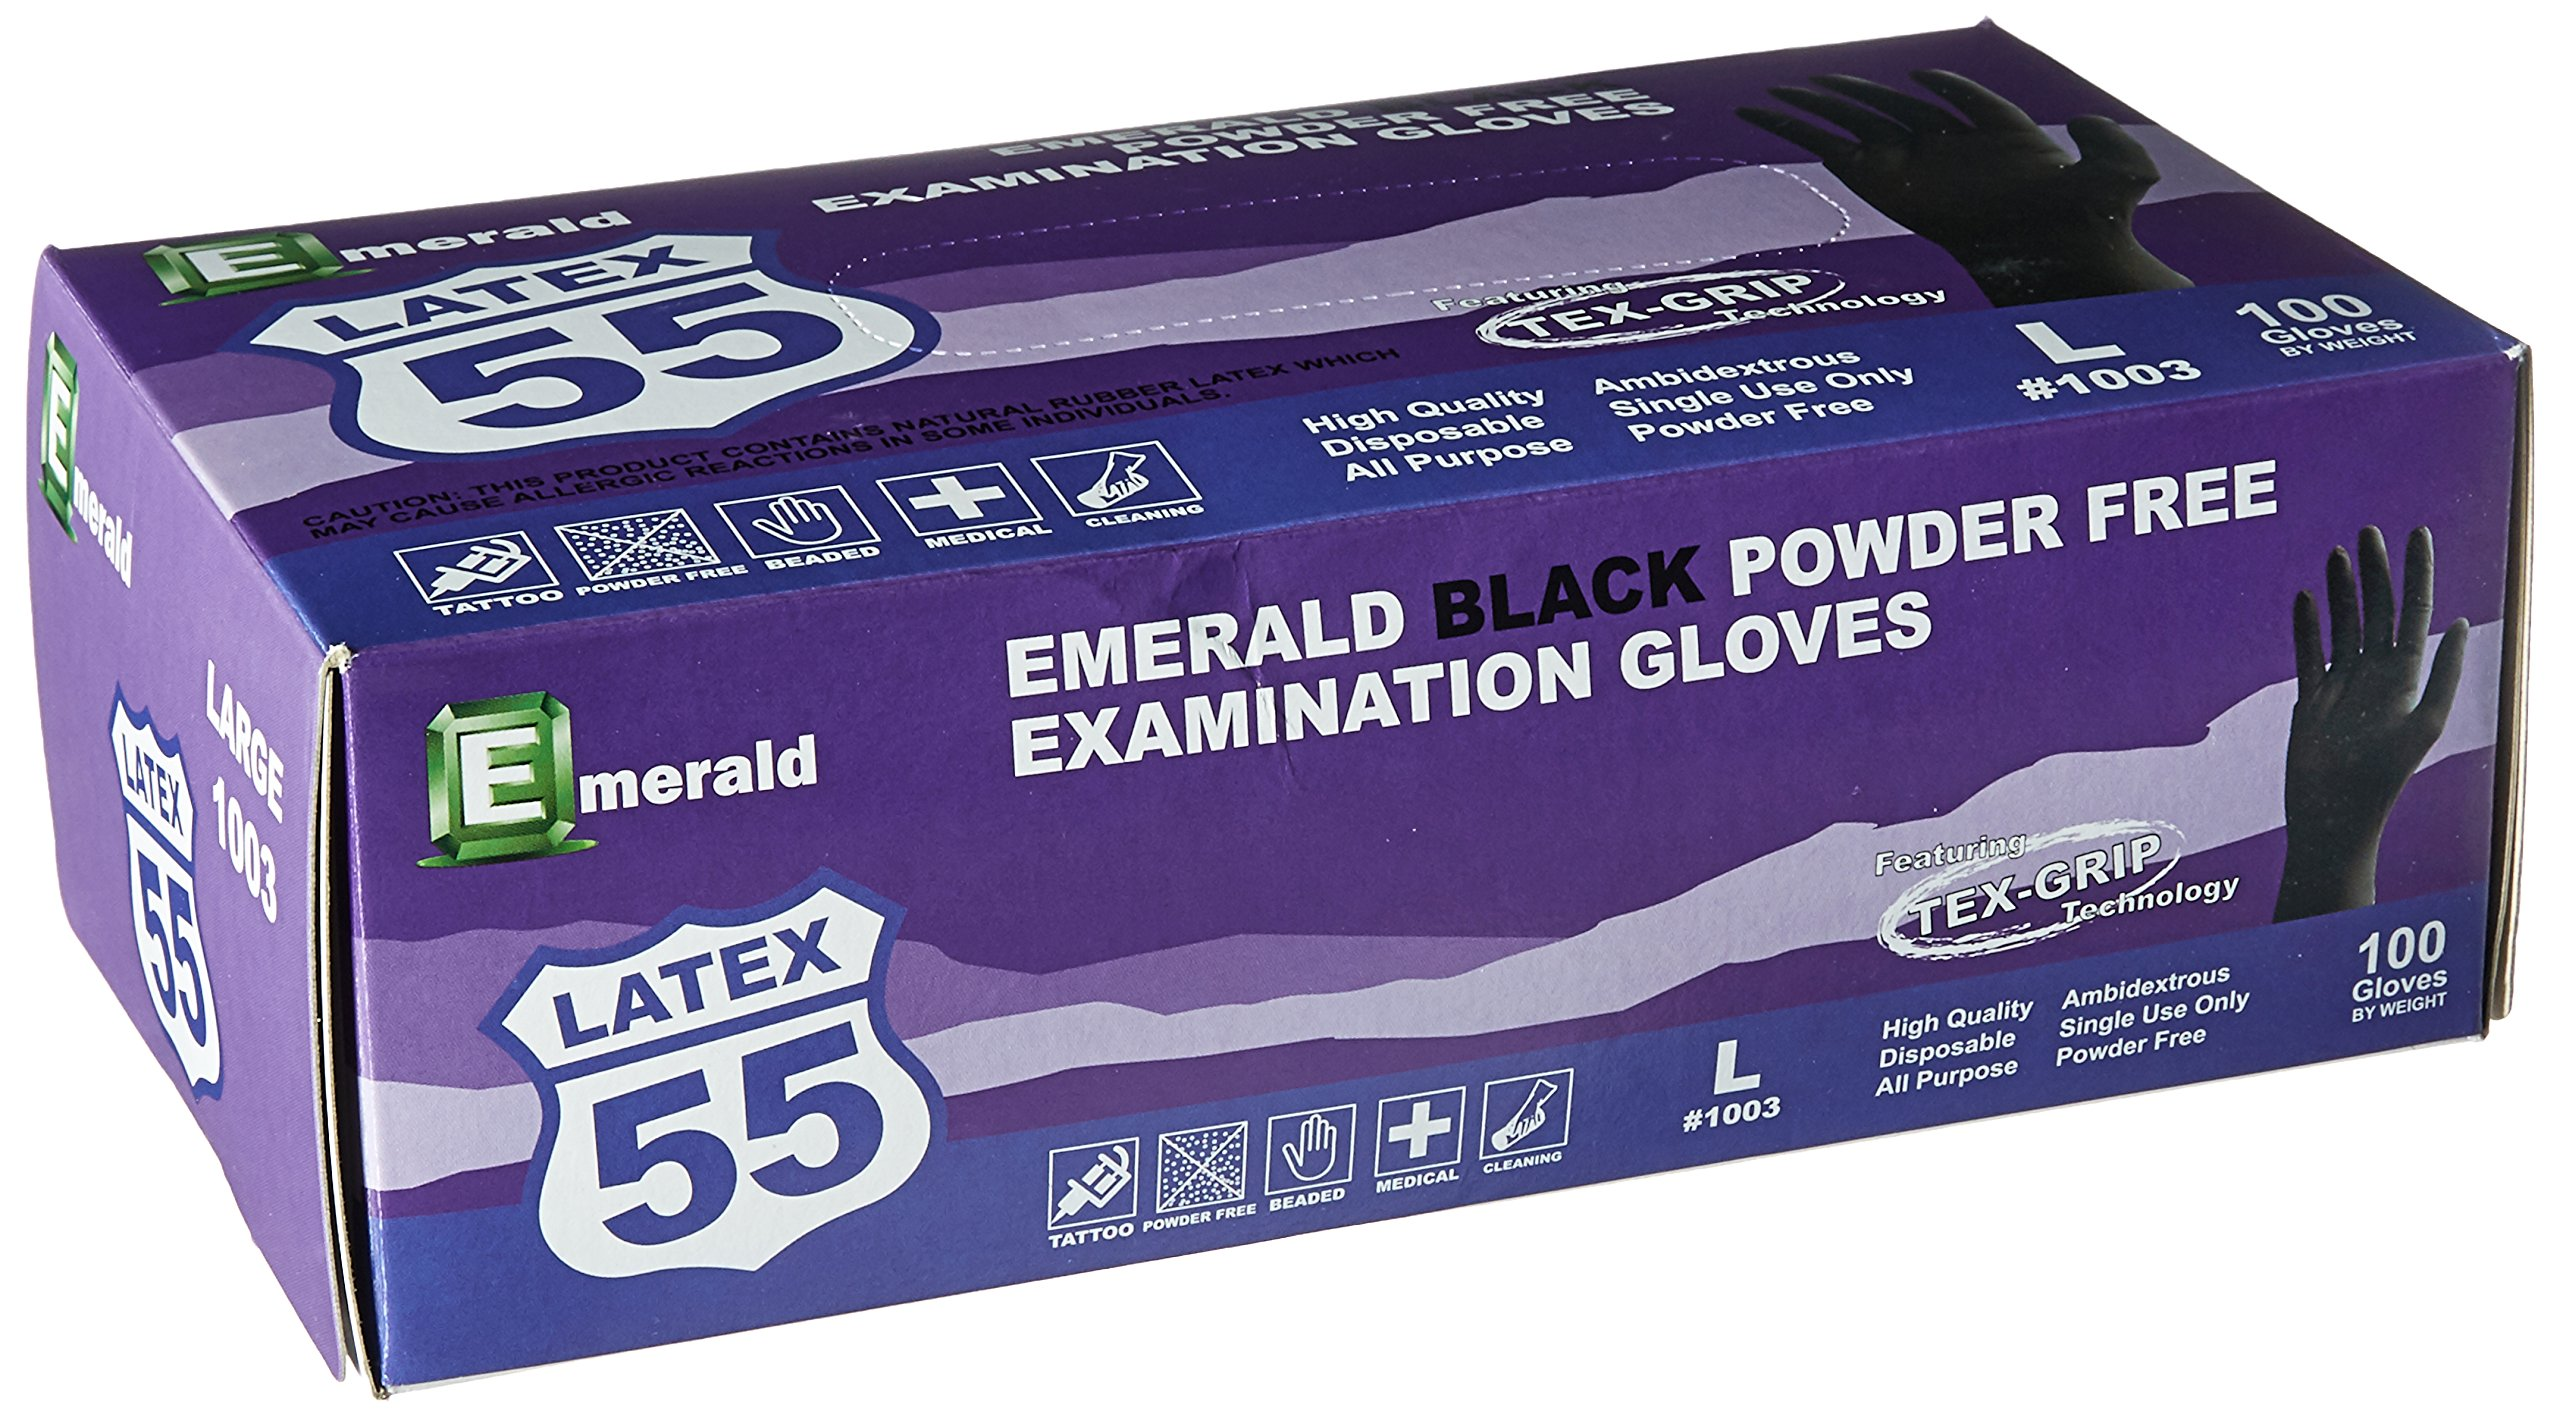 Emerald 1003 Black Latex Powder-Free Exam Gloves with Textured Grip, 10 Boxes of 100, Total 1000 Gloves Size: Large, by Emerald (Image #2)